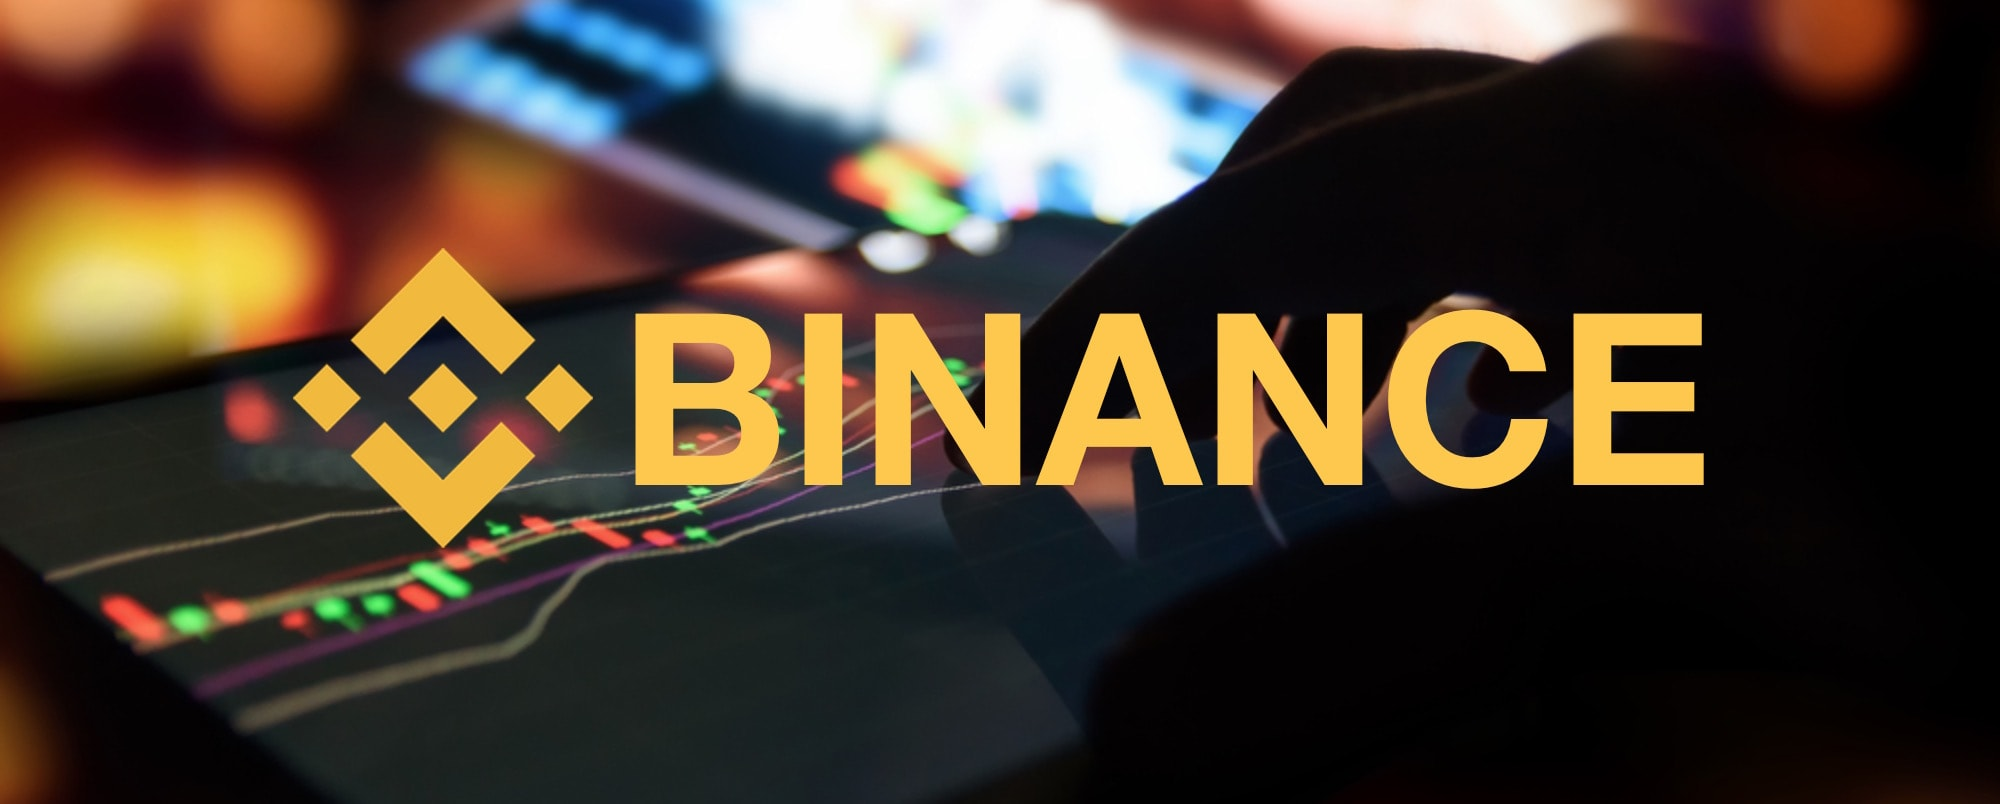 Binance Coin (BNB)